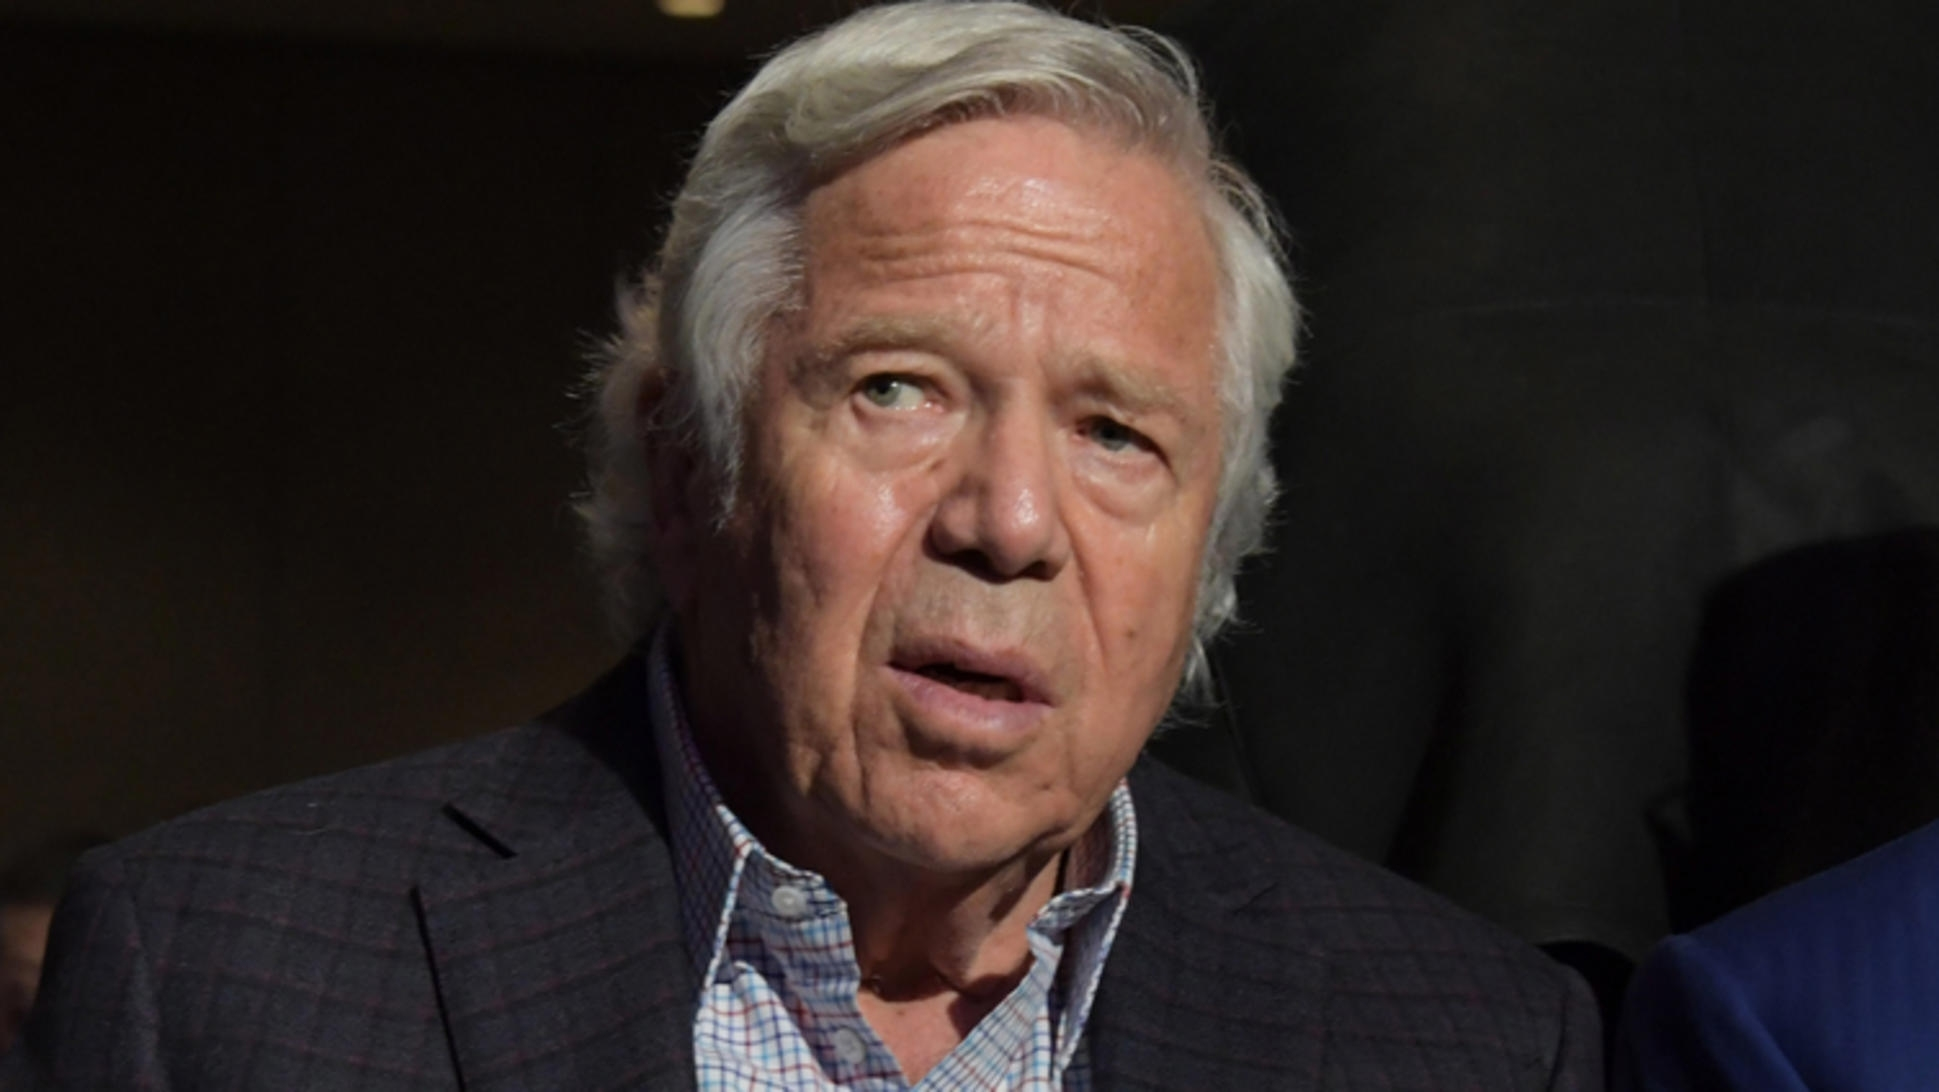 Patriots Owner Robert Kraft Shows Off His Dance Moves With intended for Robert Kraft Cardi B